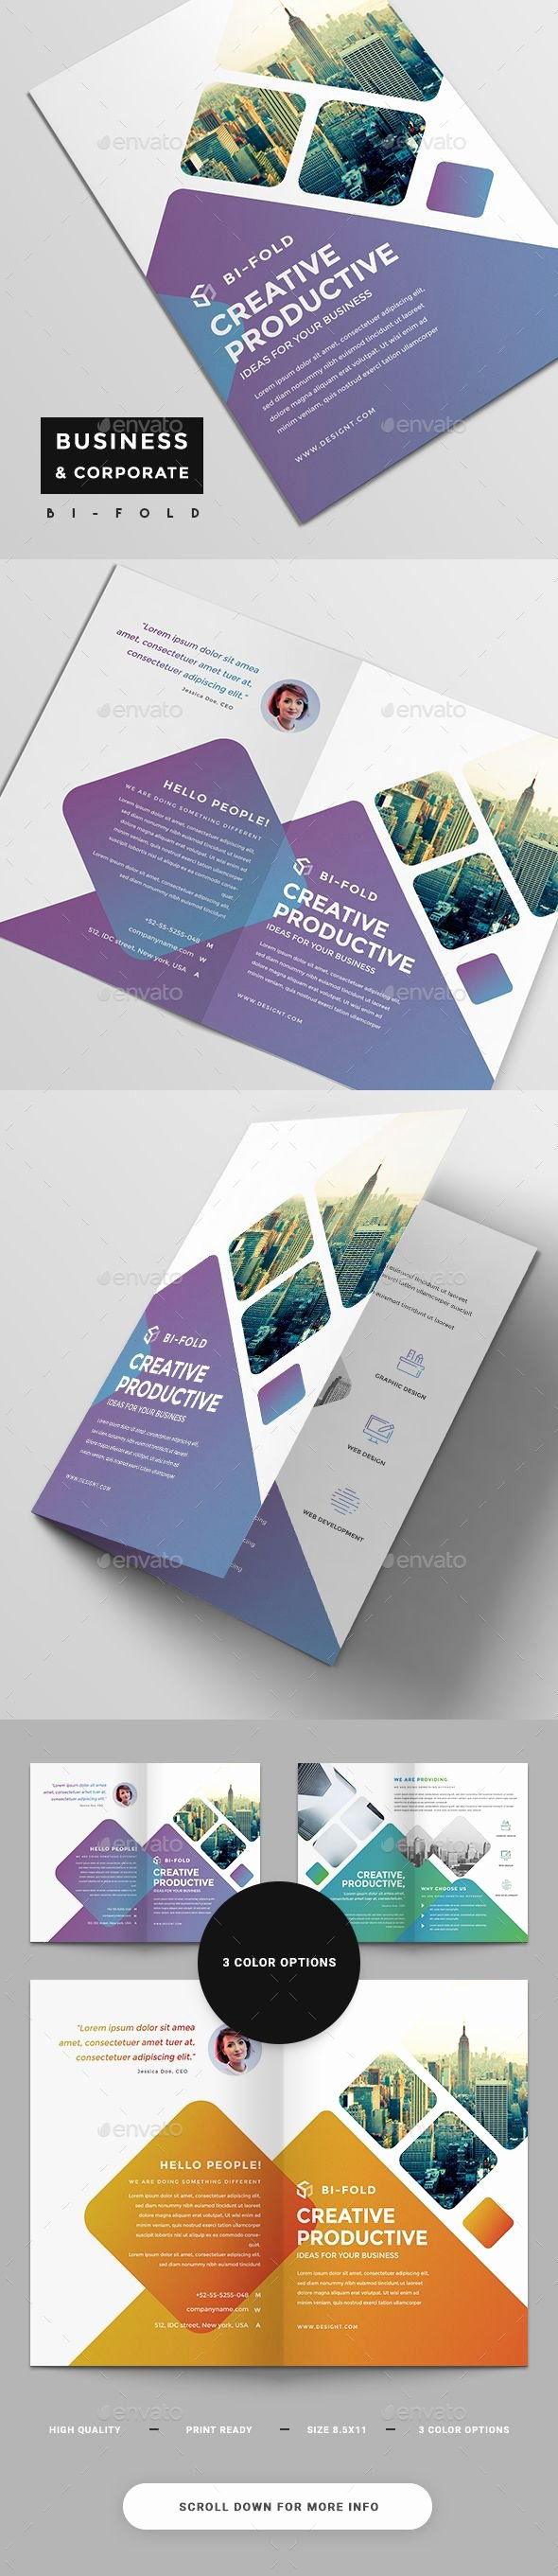 Bi Fold Brochure Template Inspirational 25 Best Ideas About Bi Fold Brochure On Pinterest